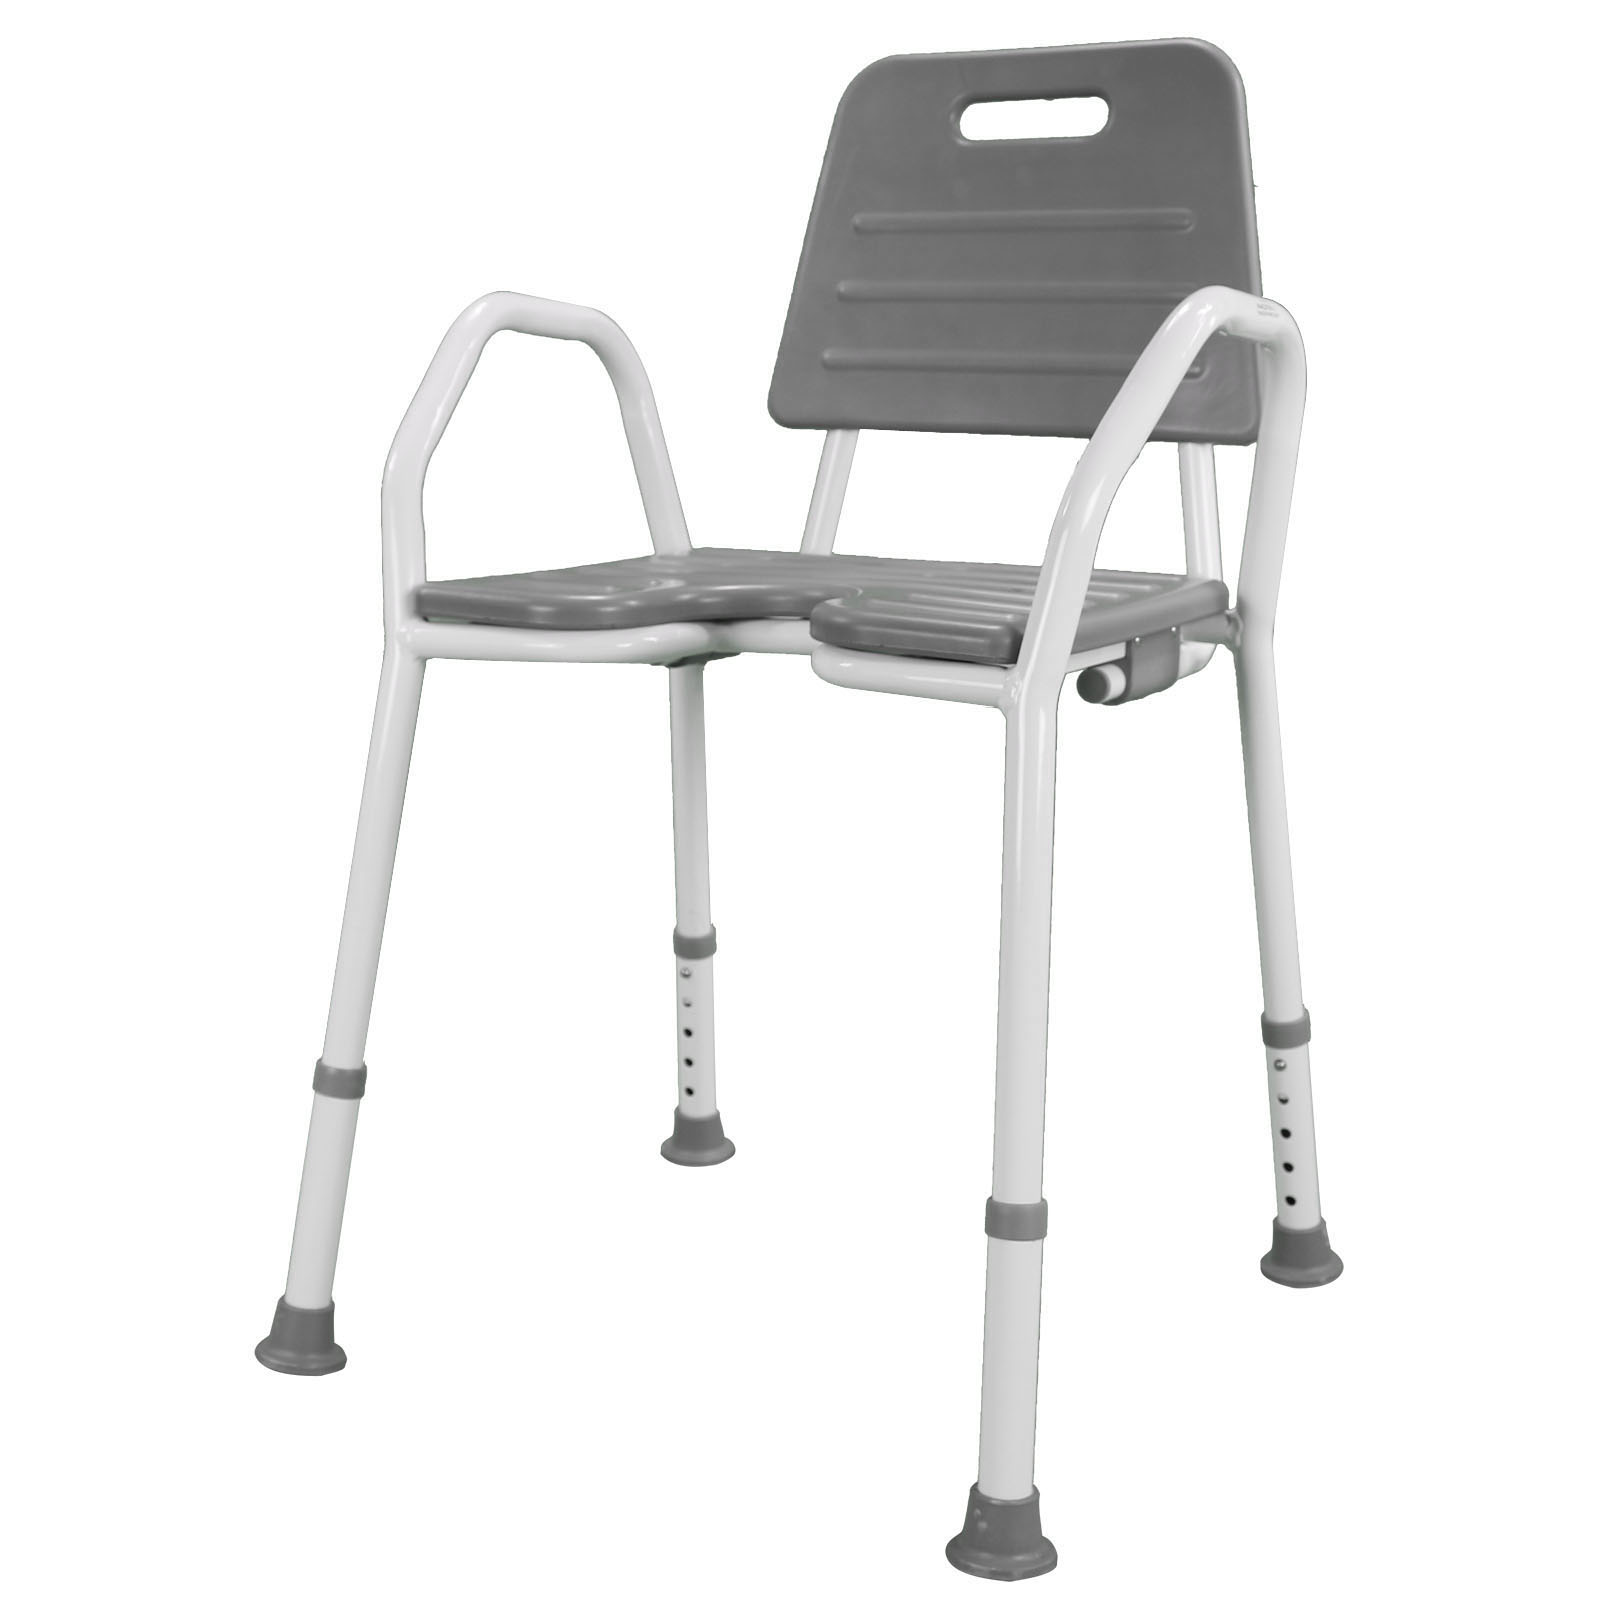 shower chair with wheels and removable arms baby 1 year old seat stool adjustable height soft backrest